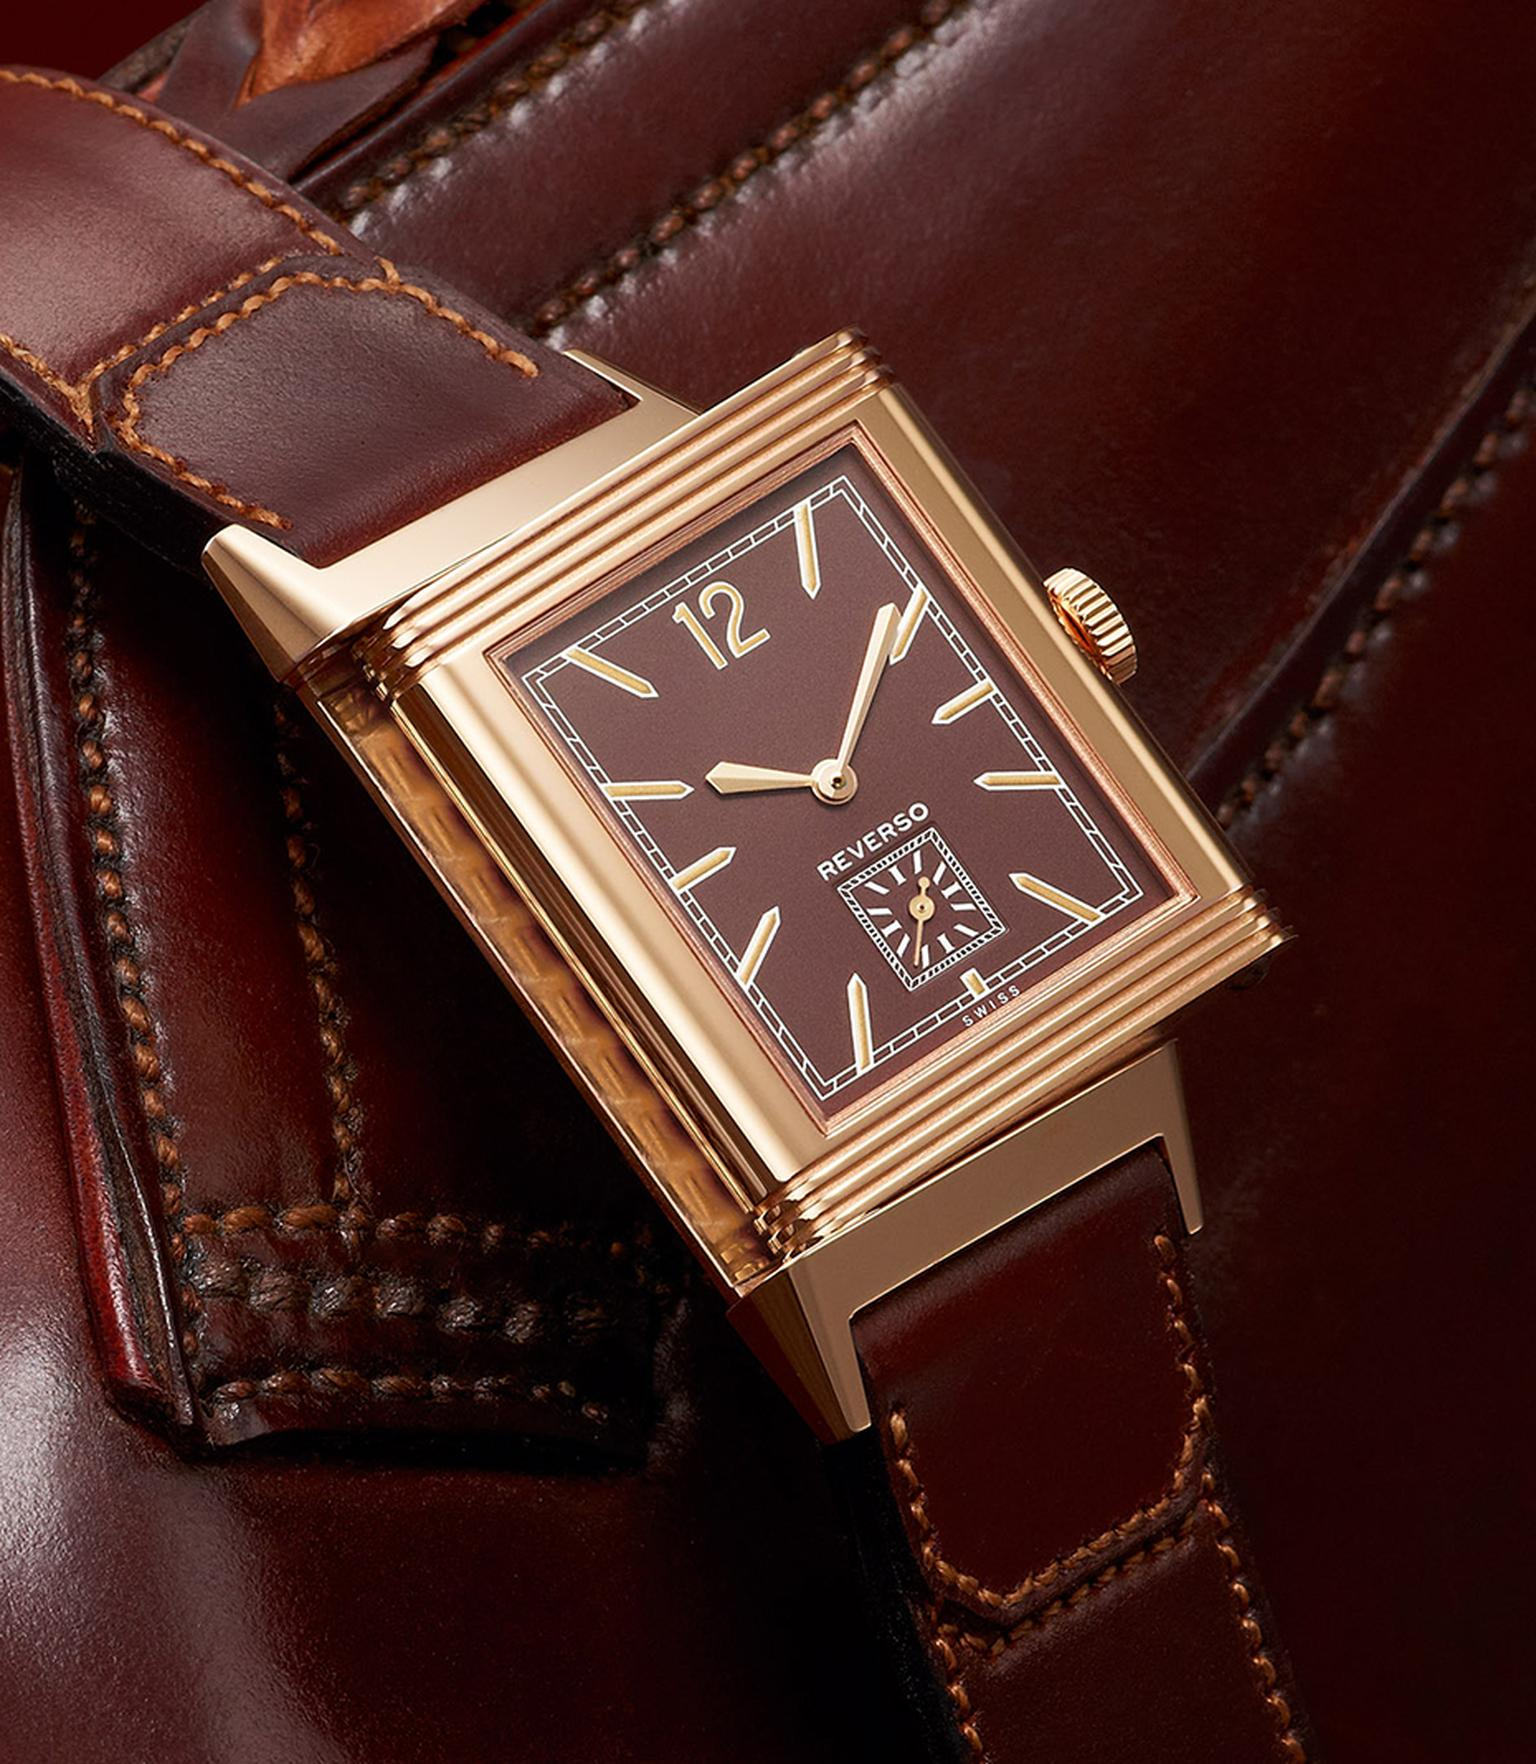 Grande Reverso Ultra Thin 1931 with its chocolate dial